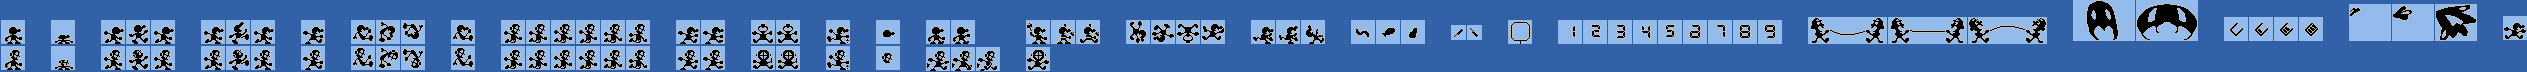 Mr. Game and Watch (Super Mario Maker-Style)